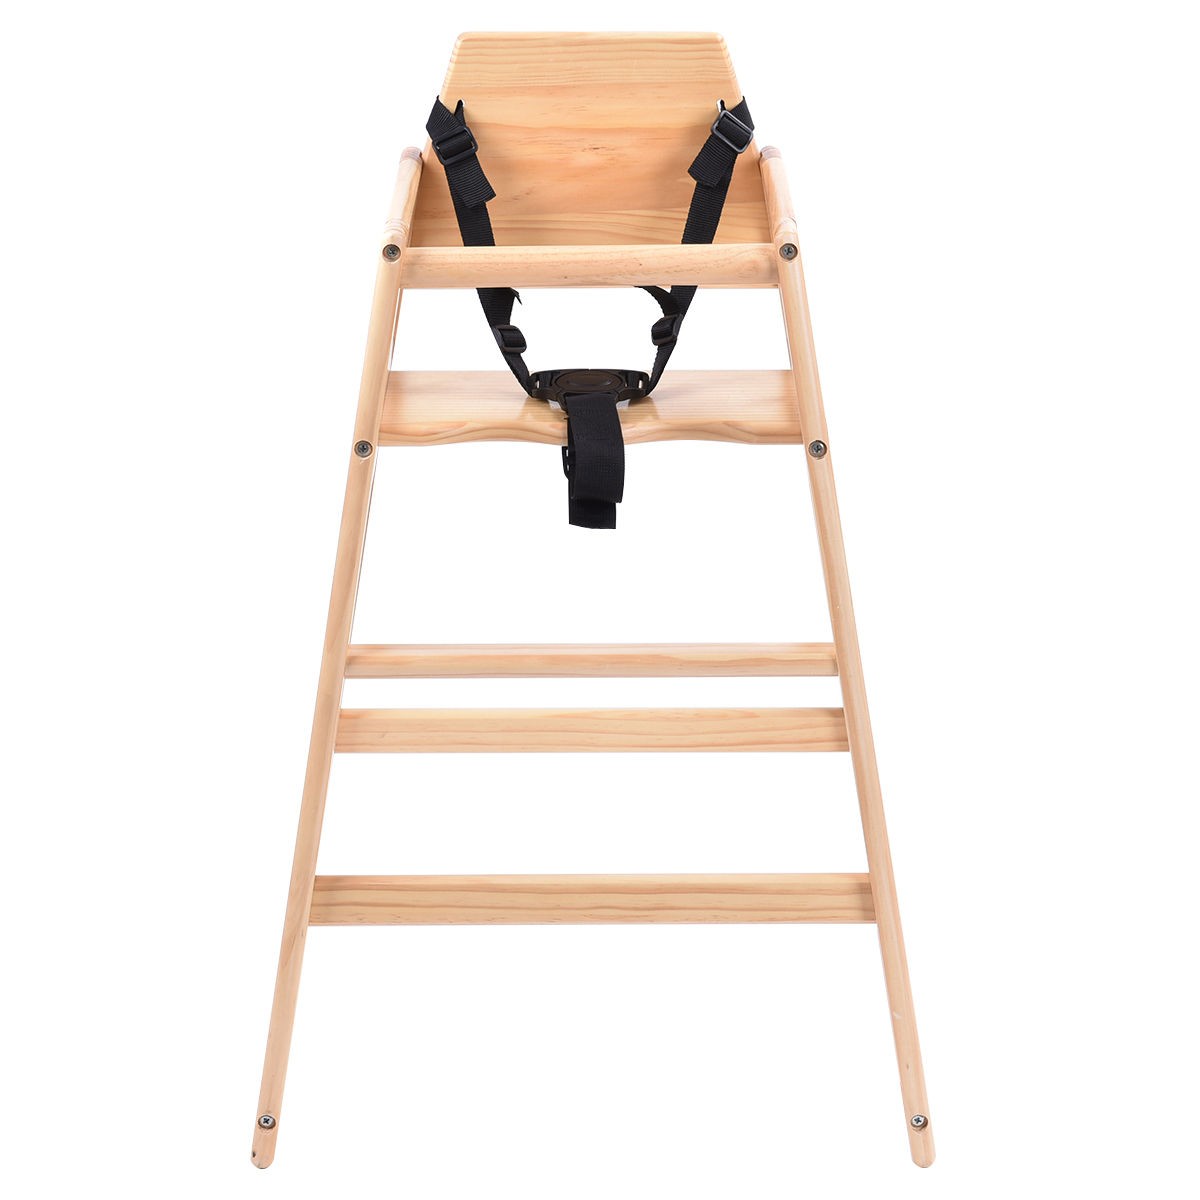 Toddler Wooden Chair Costway Baby High Chair Wooden Stool Infant Feeding Children Toddler